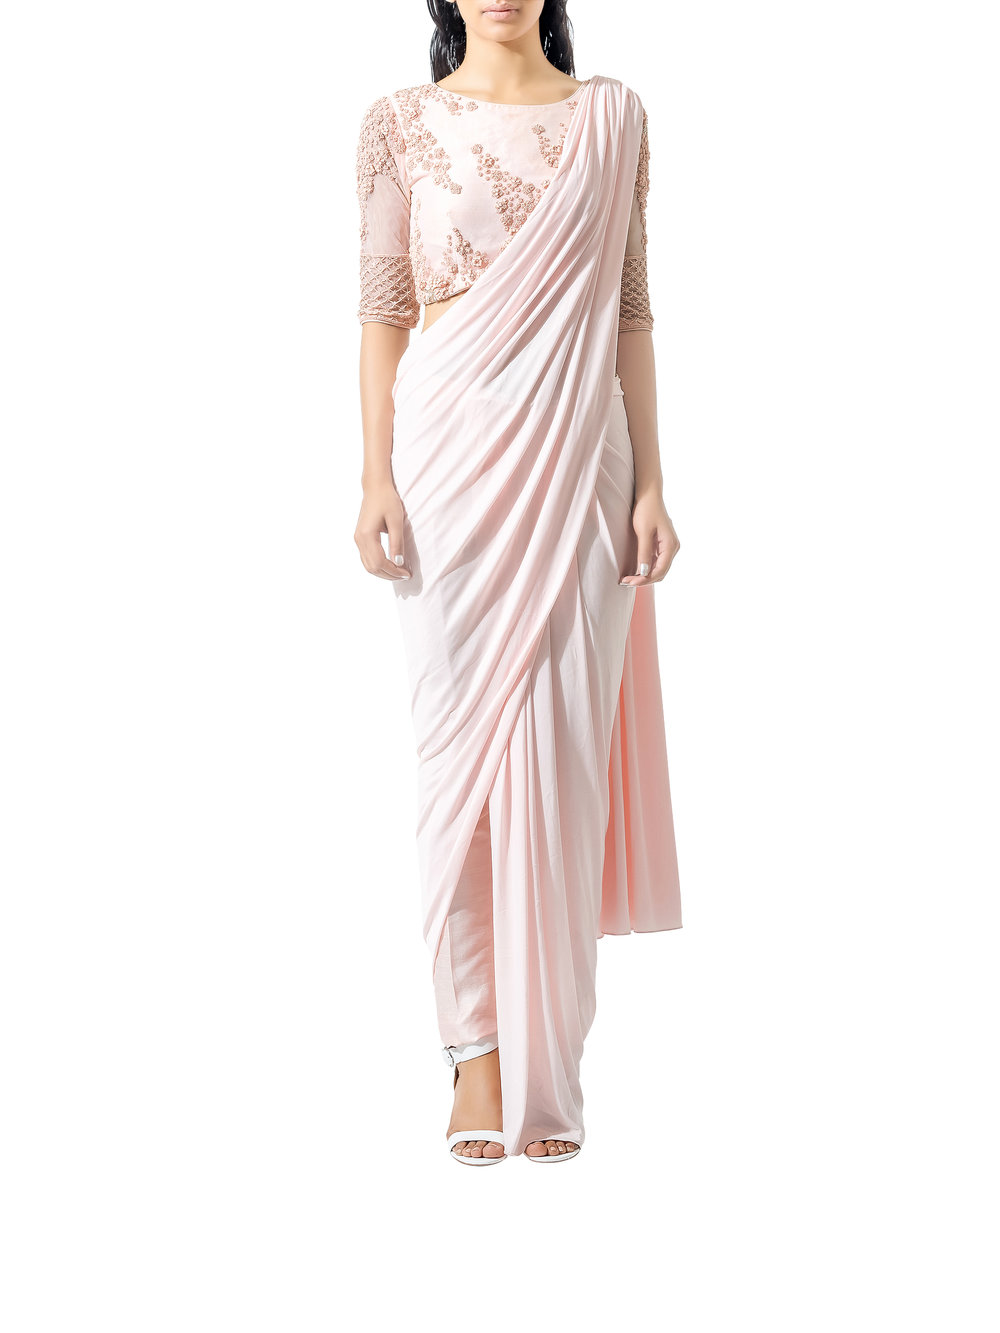 Bhaavya Bhatnagar Blush Beaded Three Piece Sari Set